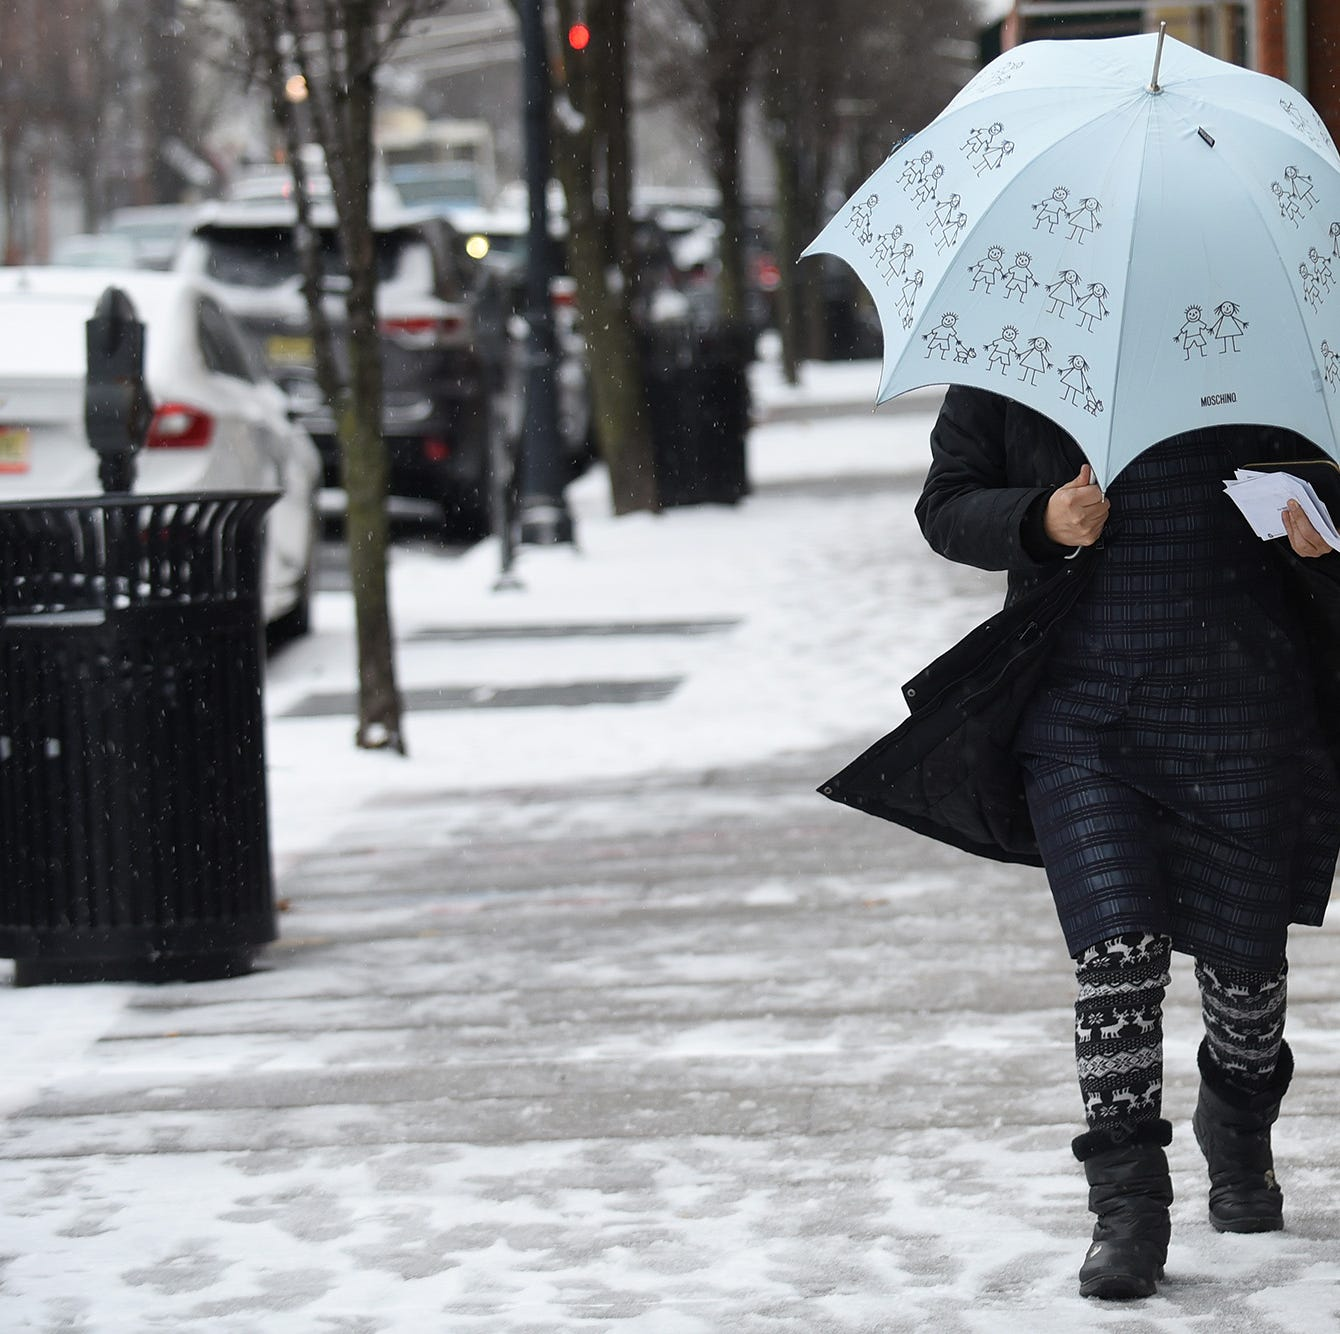 Snow expected to hit New Jersey on Sunday evening; expect a slippery commute Monday